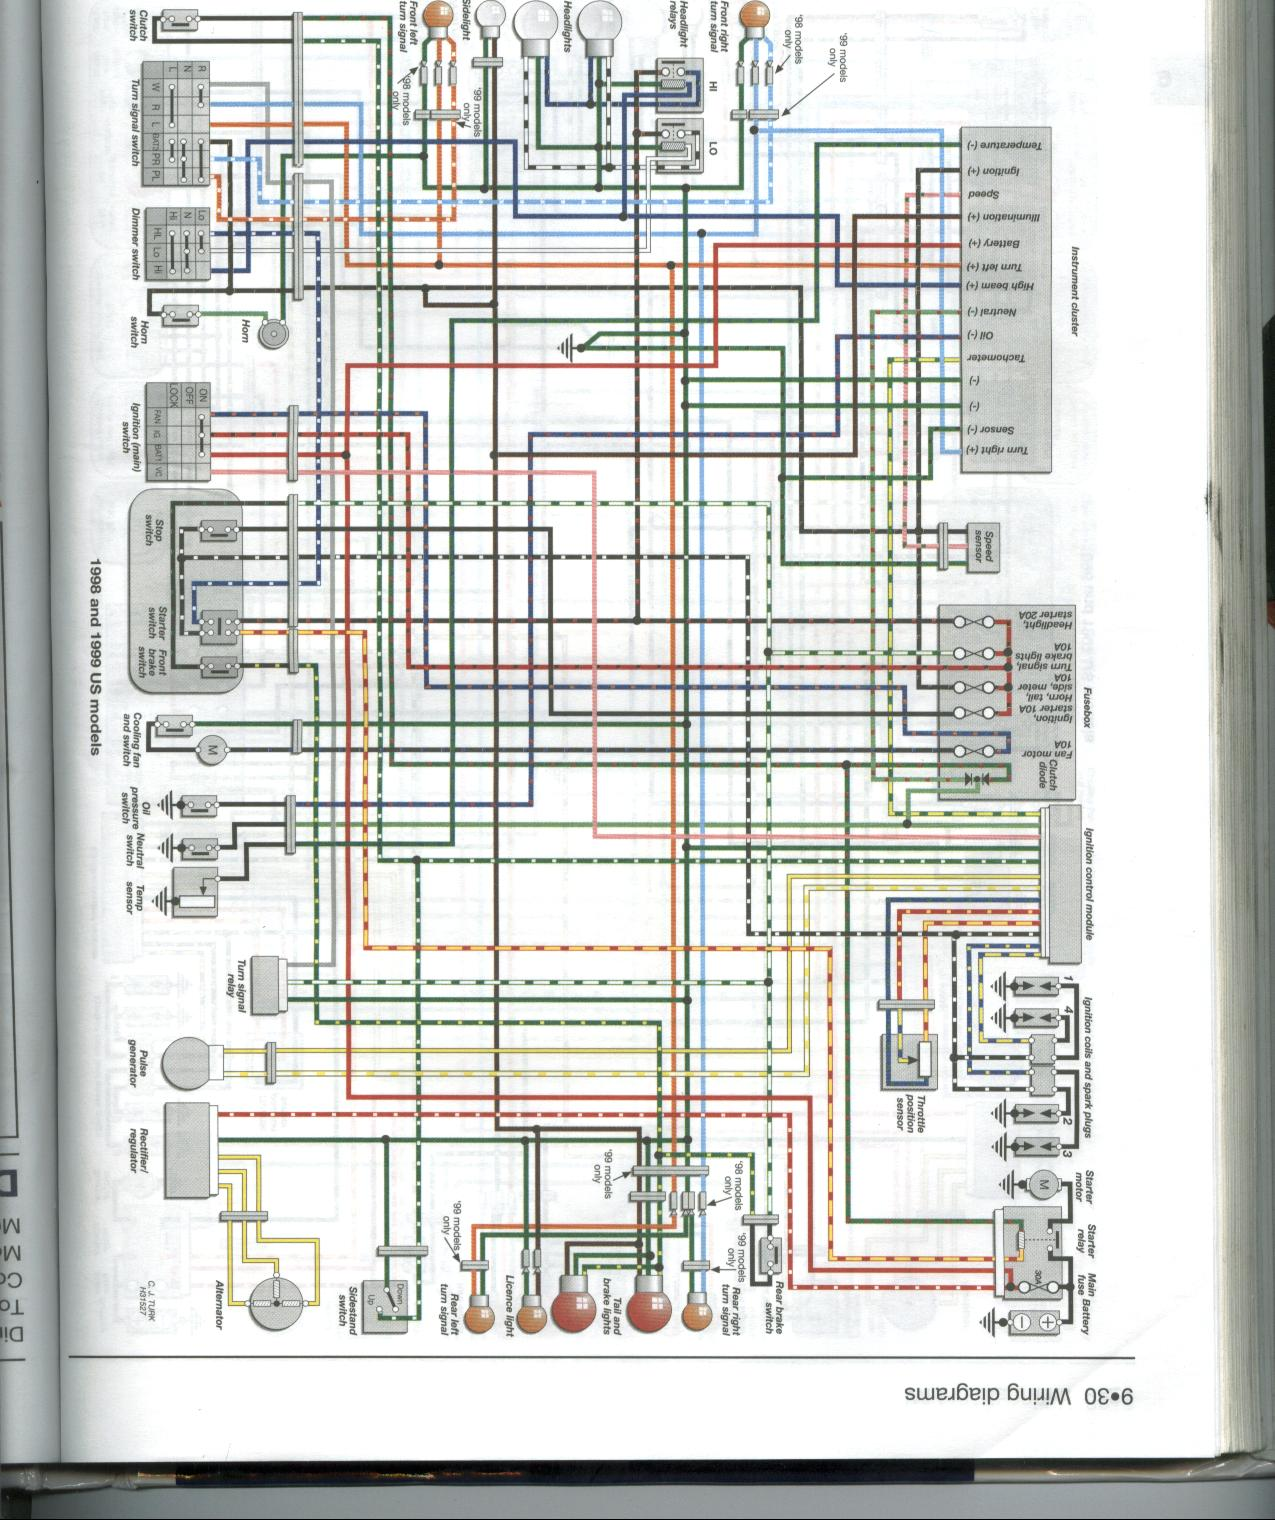 Wiring Diagrams 93-95 98-99 900rr - Honda Motorcycles